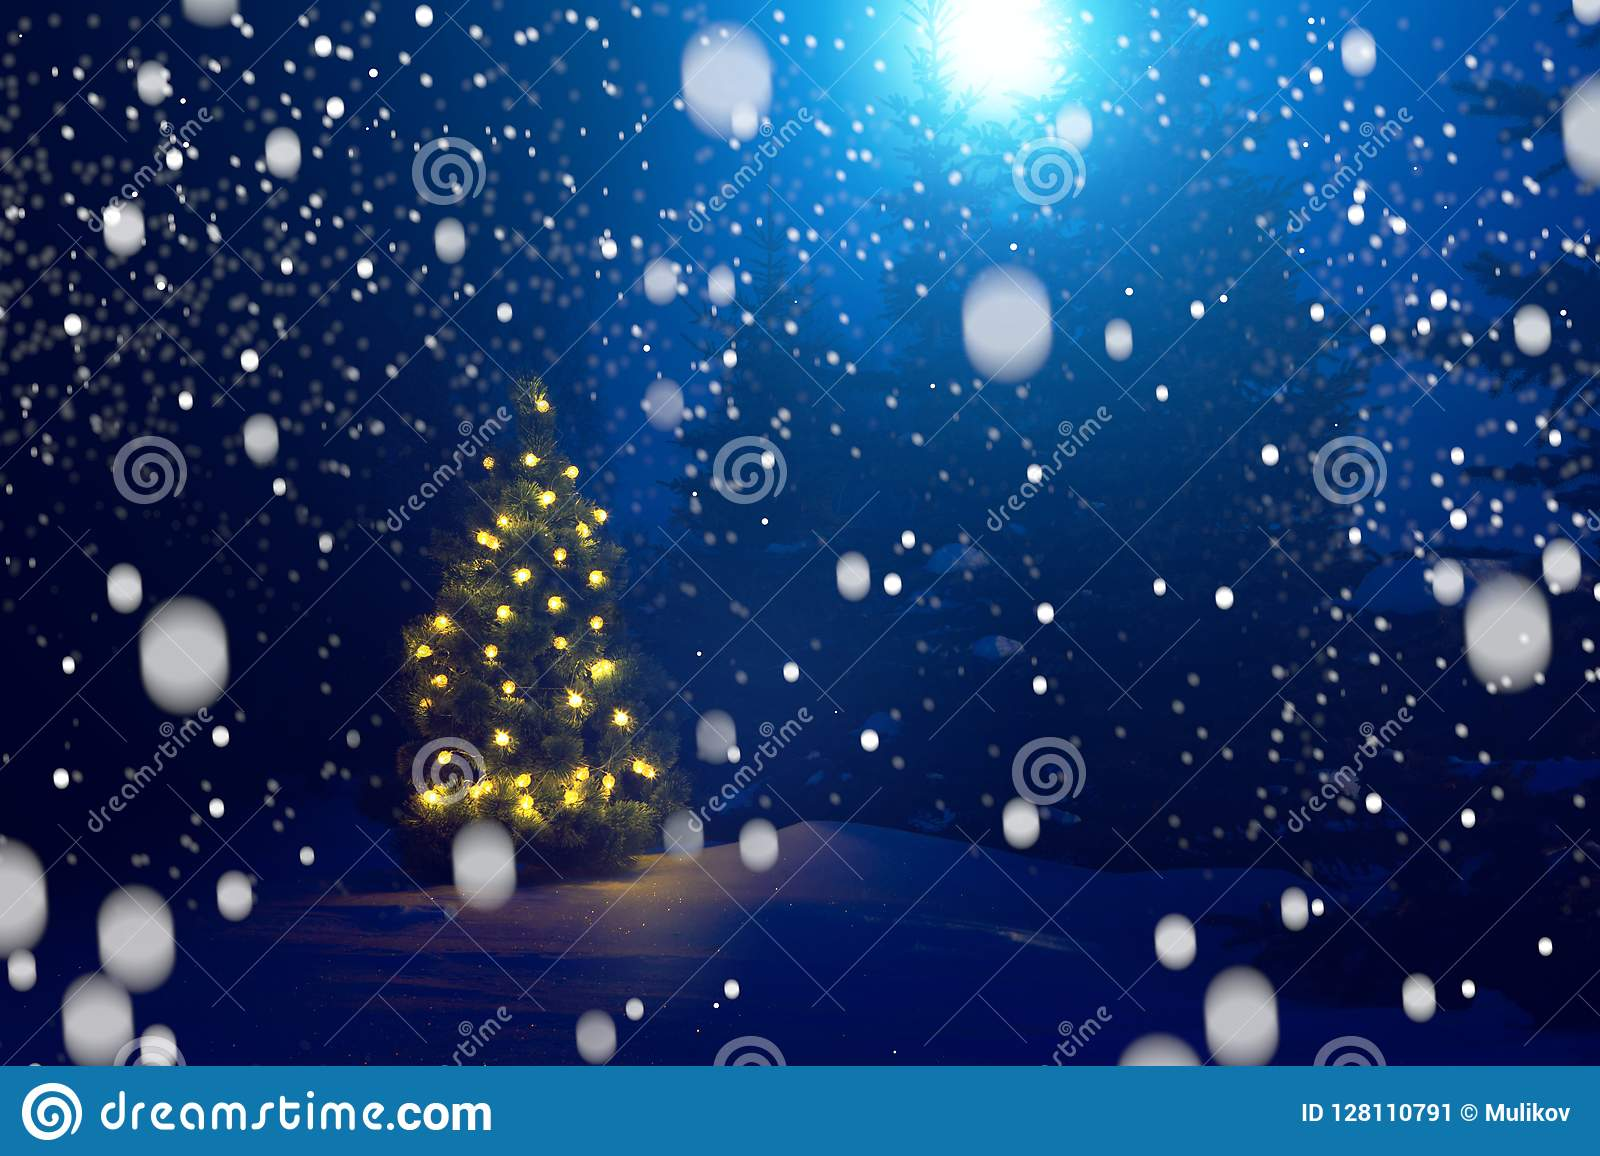 Merry Christmas! Christmas Tree Outside Snowfall In The Moonlight ...